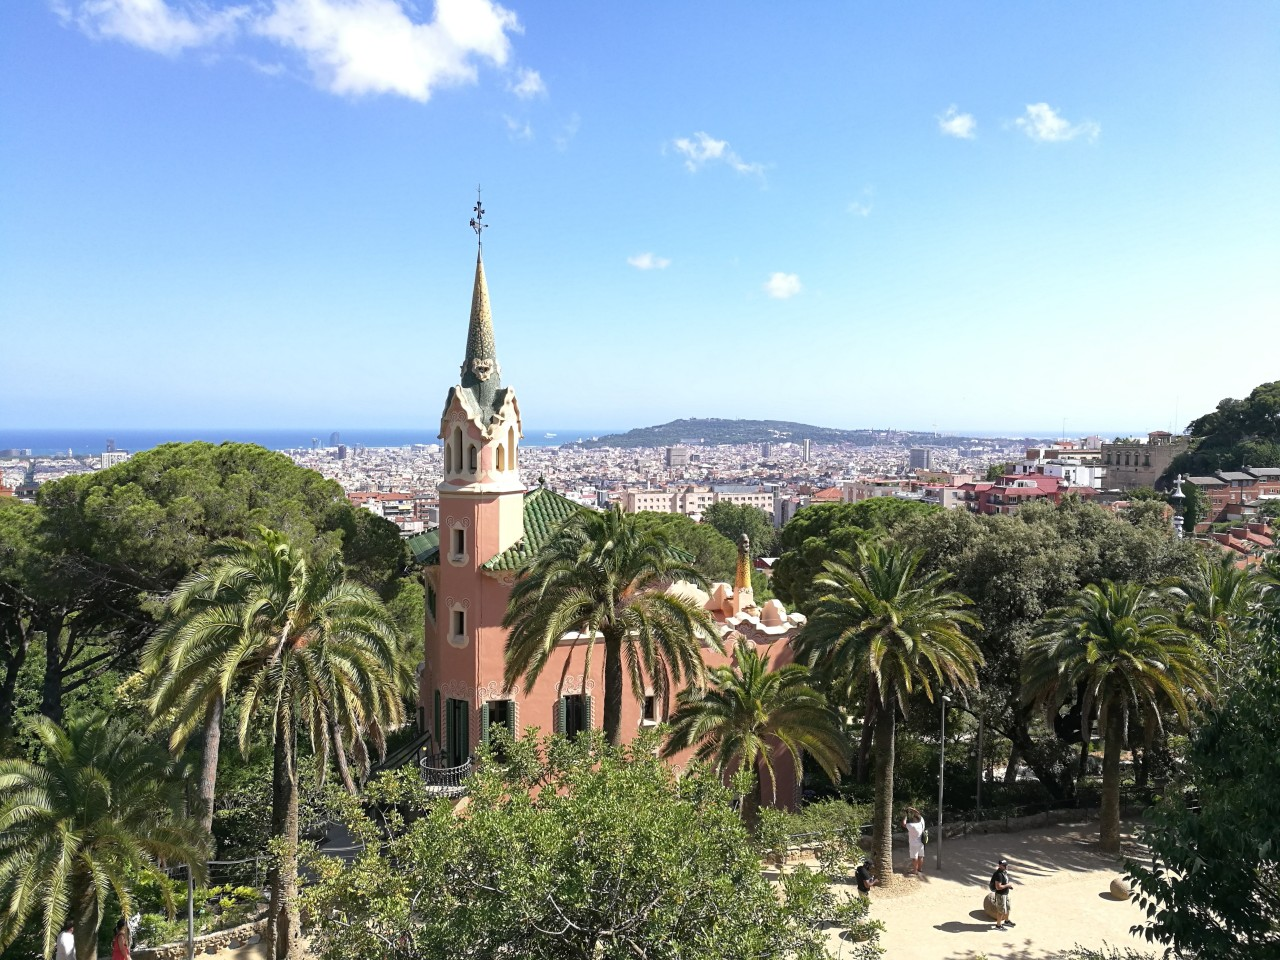 Neuroscience memory research in Barcelona